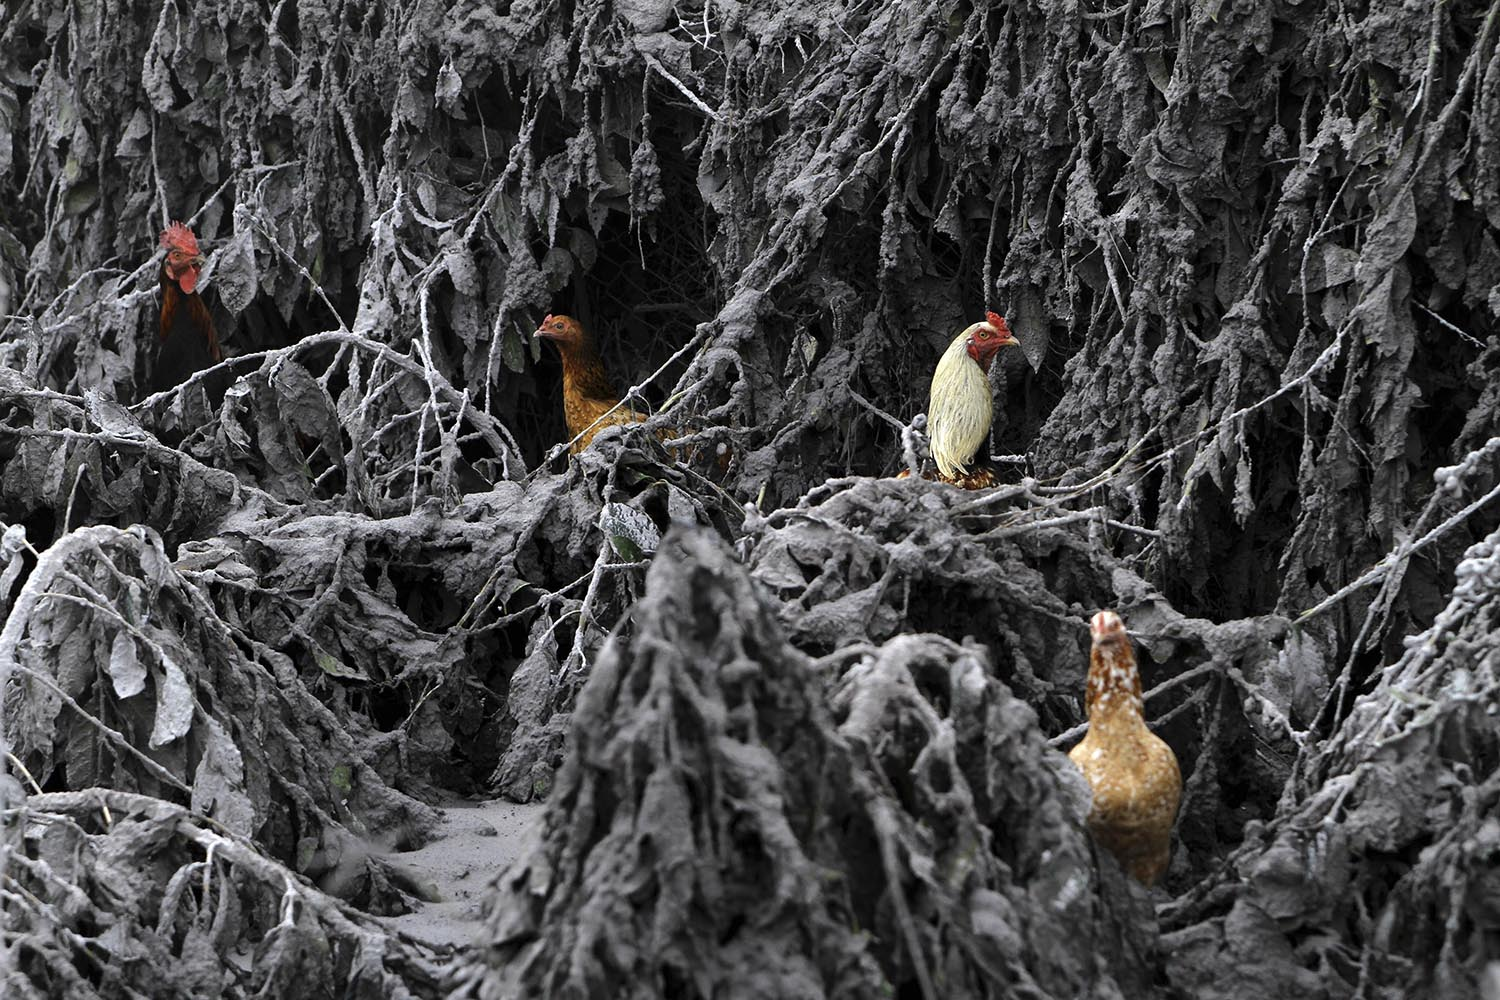 Jan. 12, 2014. Chickens are seen in the midst of plants covered by ash from Mount Sinabung near Sigarang-Garang village in Karo district, Indonesia's North Sumatra province.